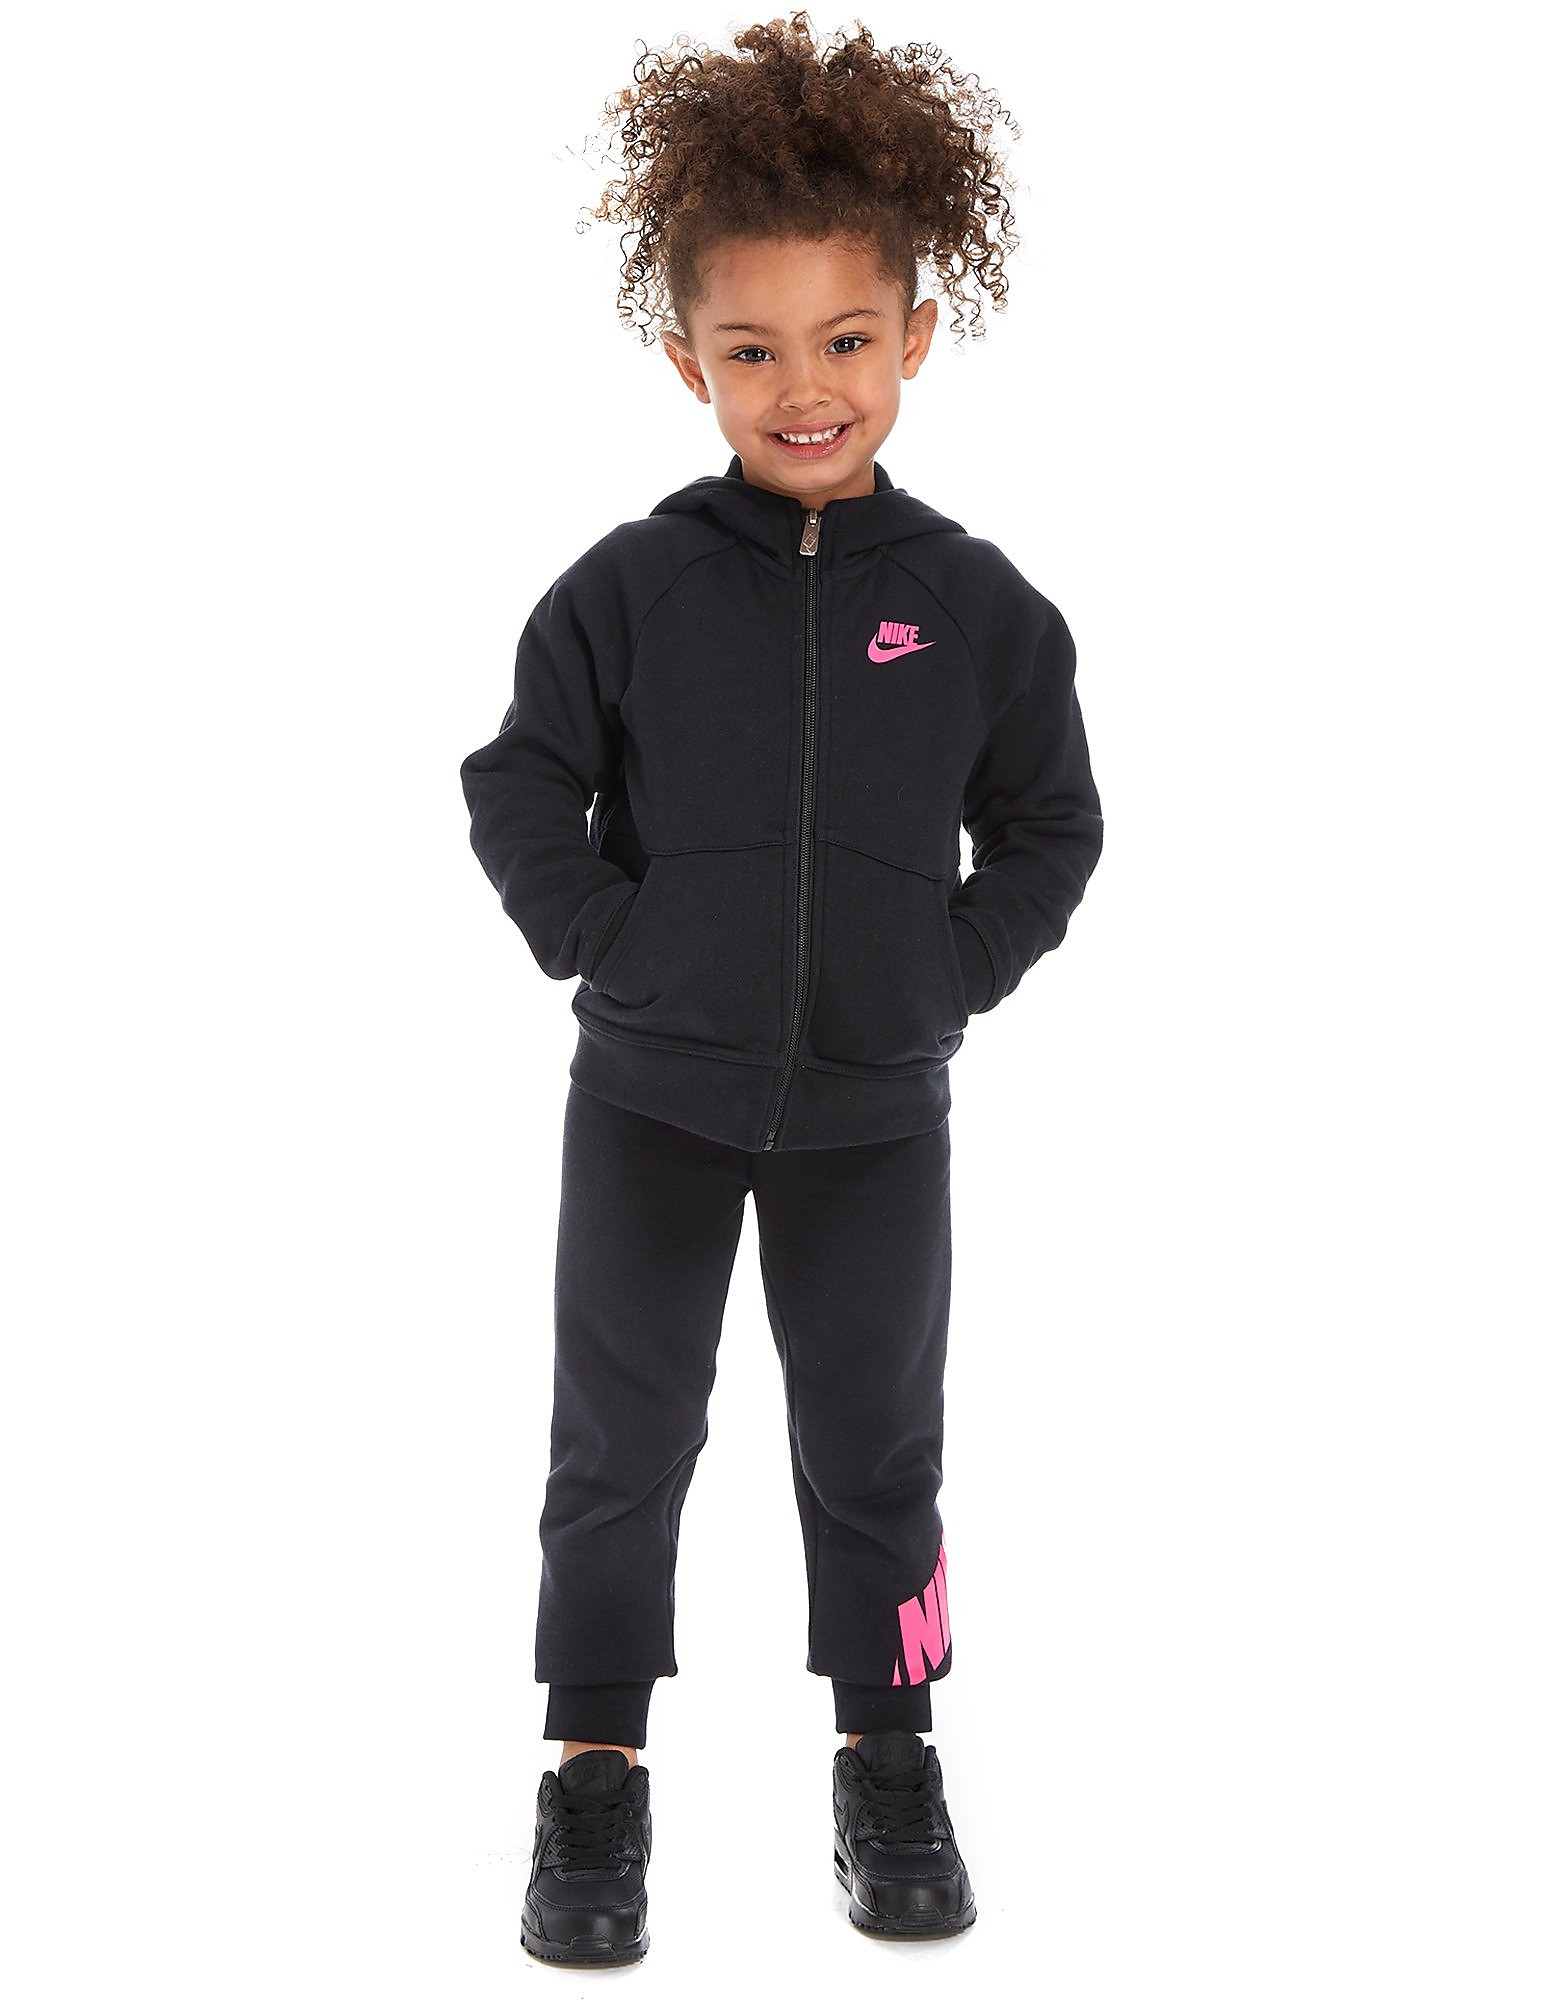 Nike Girls' Futura Fleece Suit Children